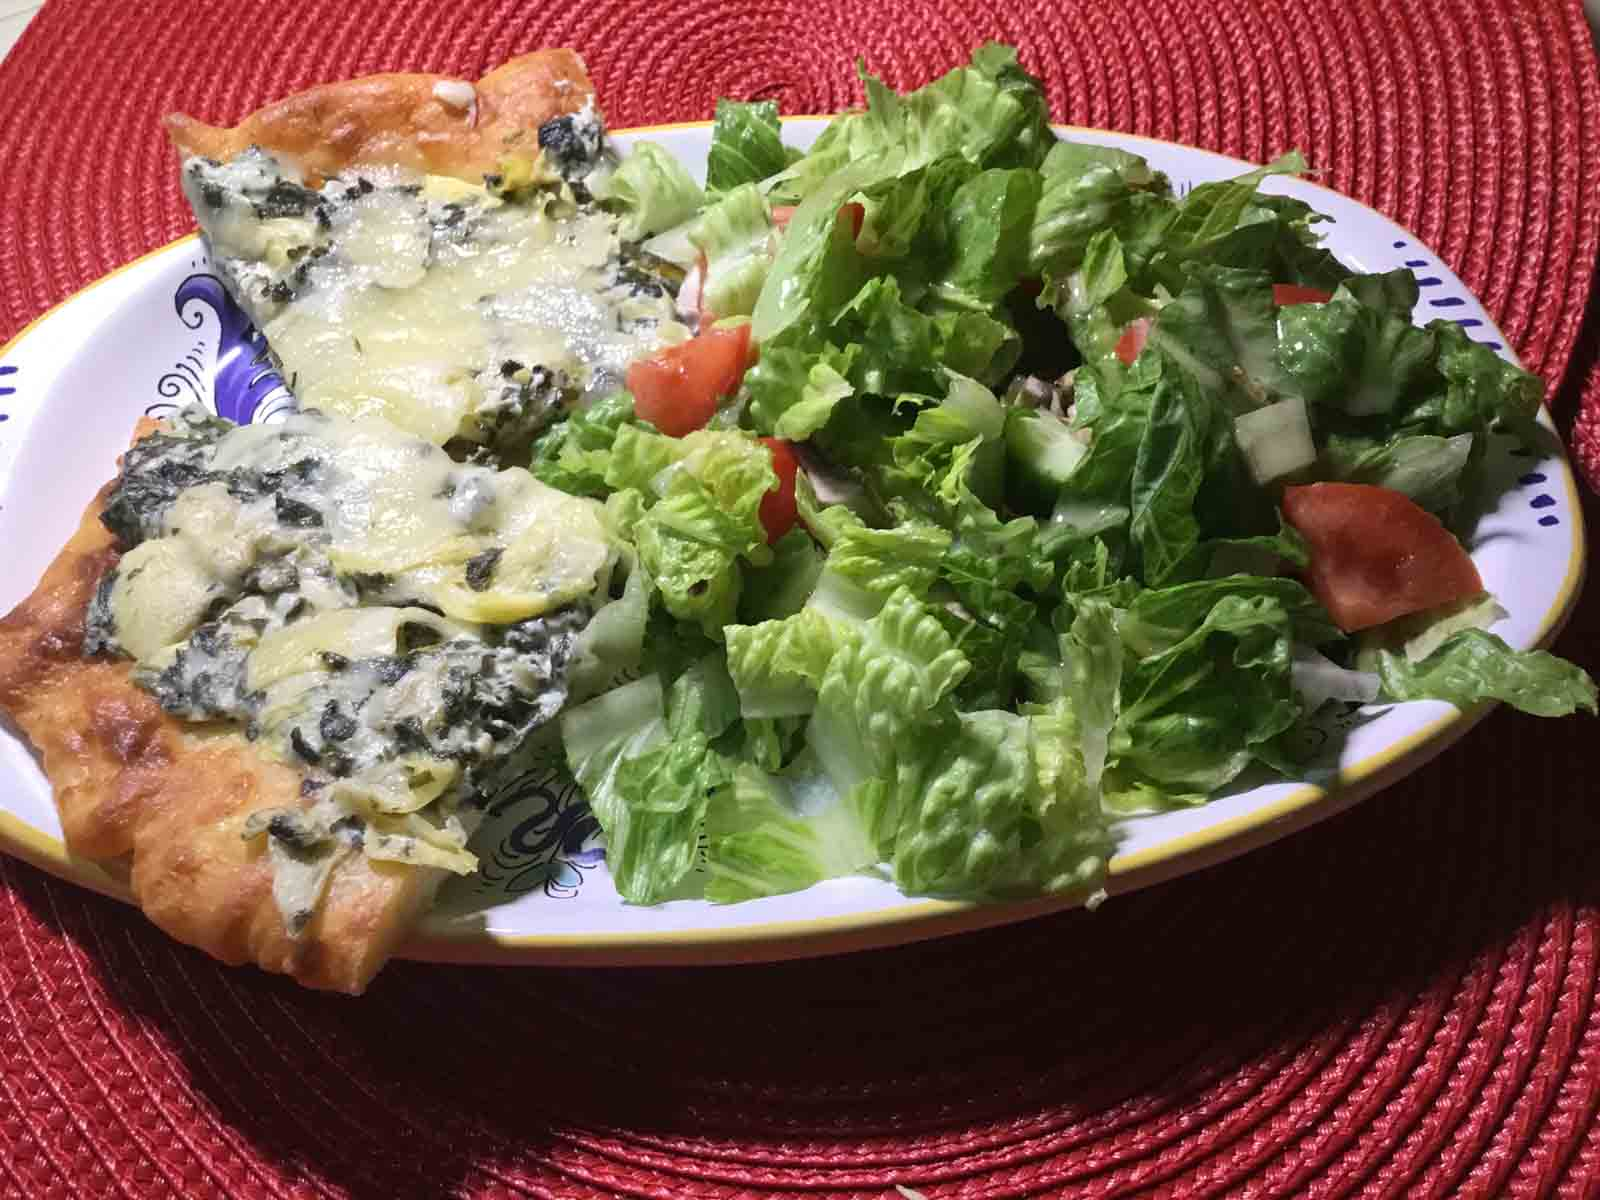 GrannyKeto.com Recipes: Artichoke Dip Pizza